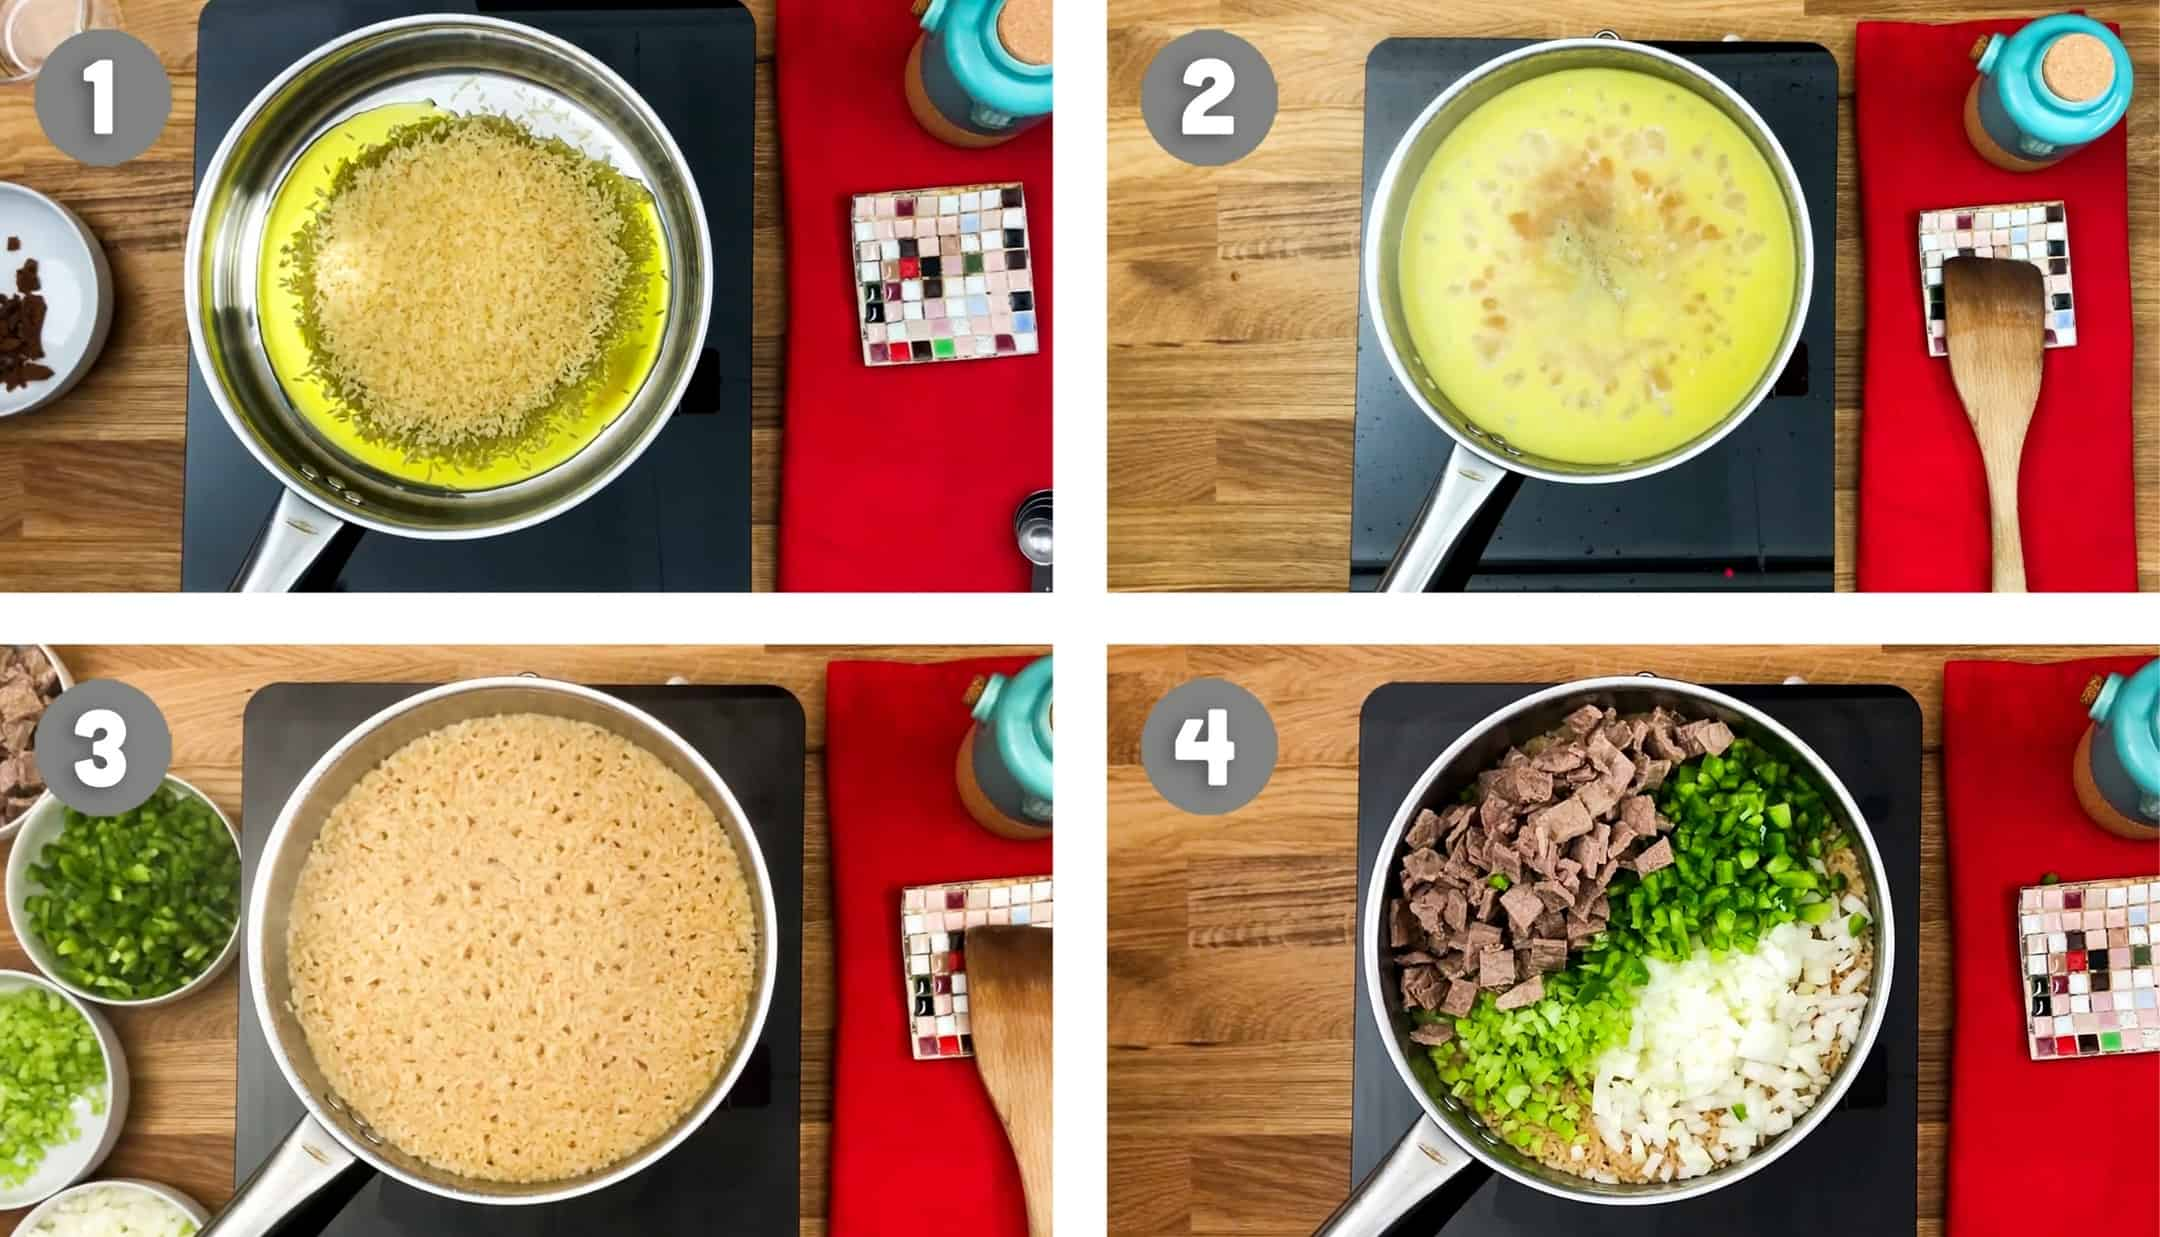 Beef fried rice steps by steps